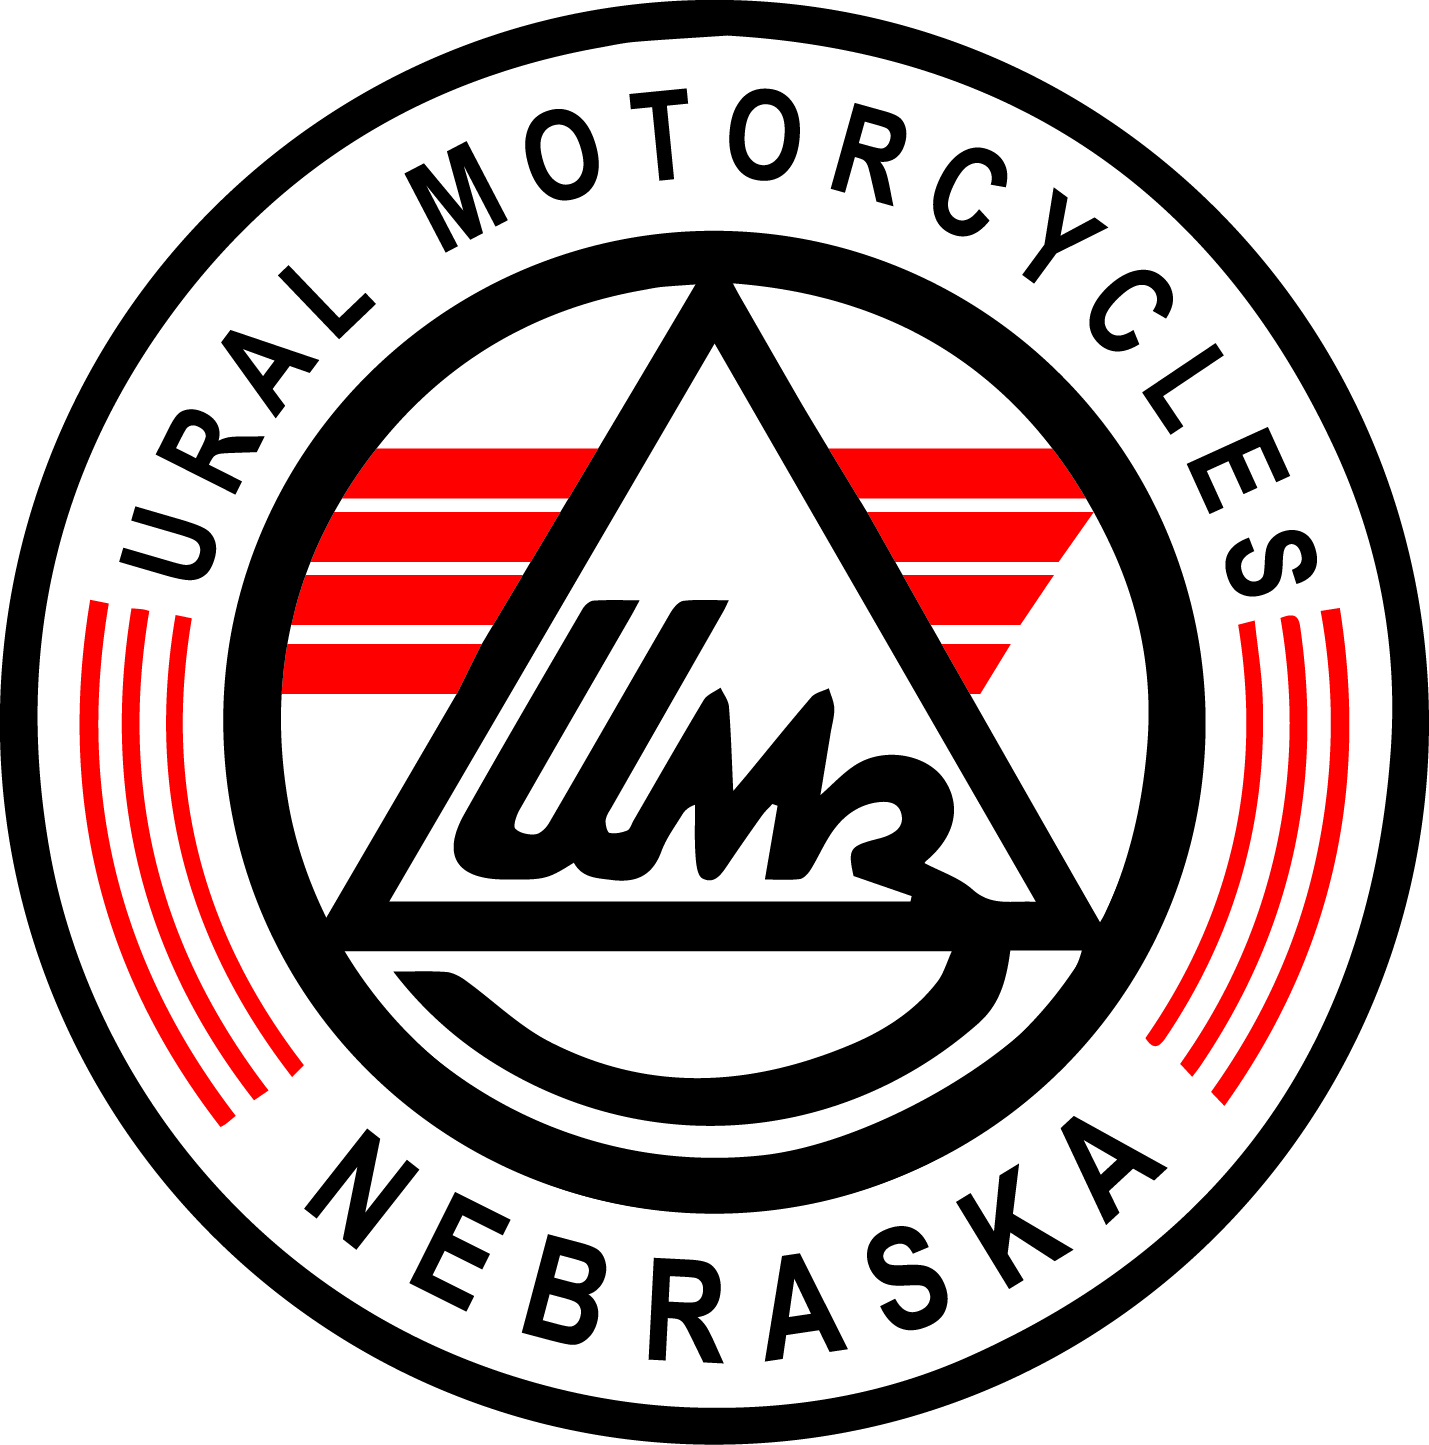 ural-red-white-logo.jpg